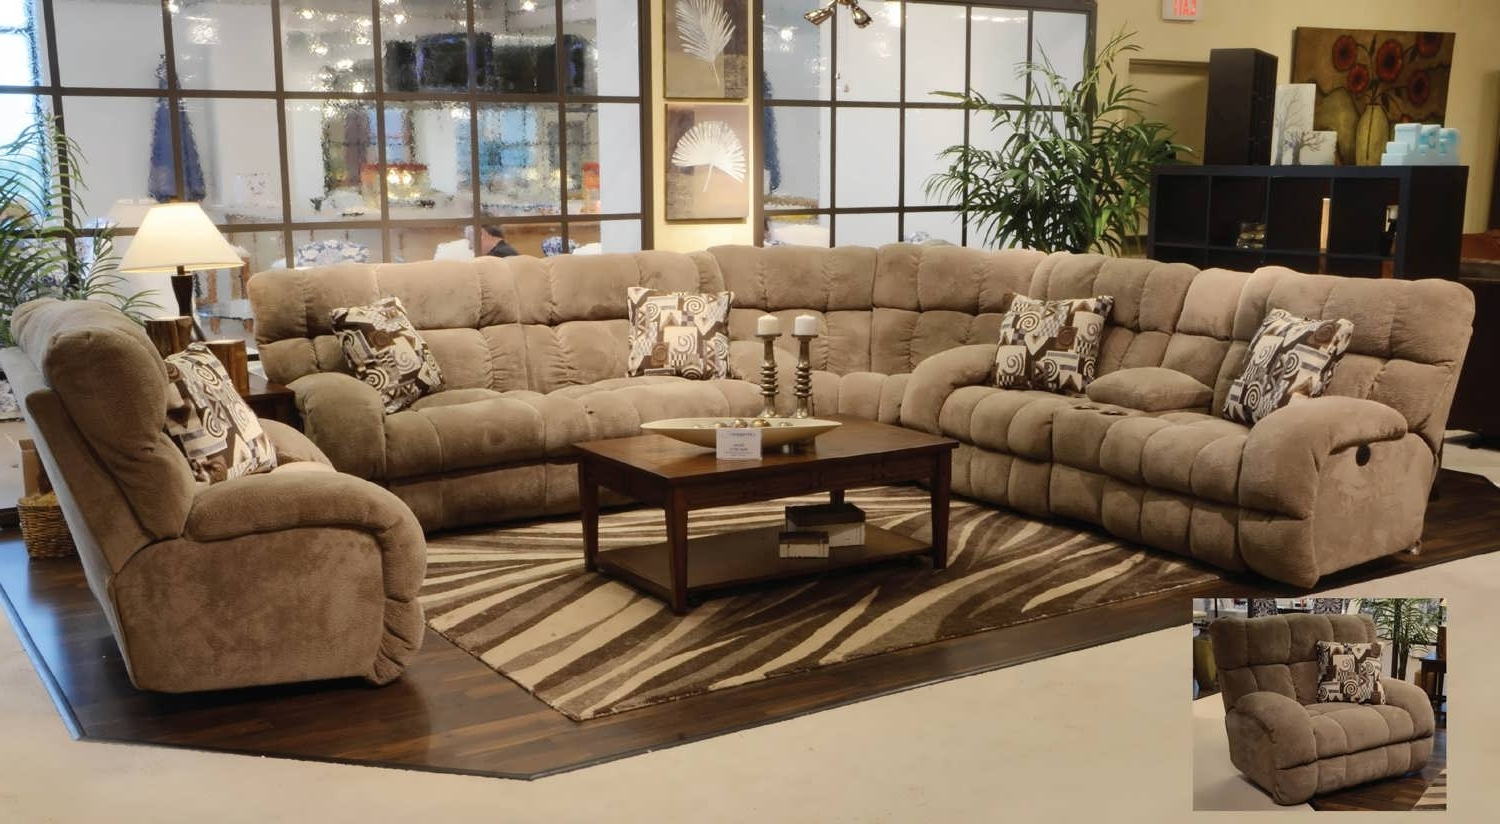 Current Extra Large Sectional Sofas With Chaise Inside Sofa : Microsuede Sectional Extra Large Sectional Sofas With (View 6 of 15)